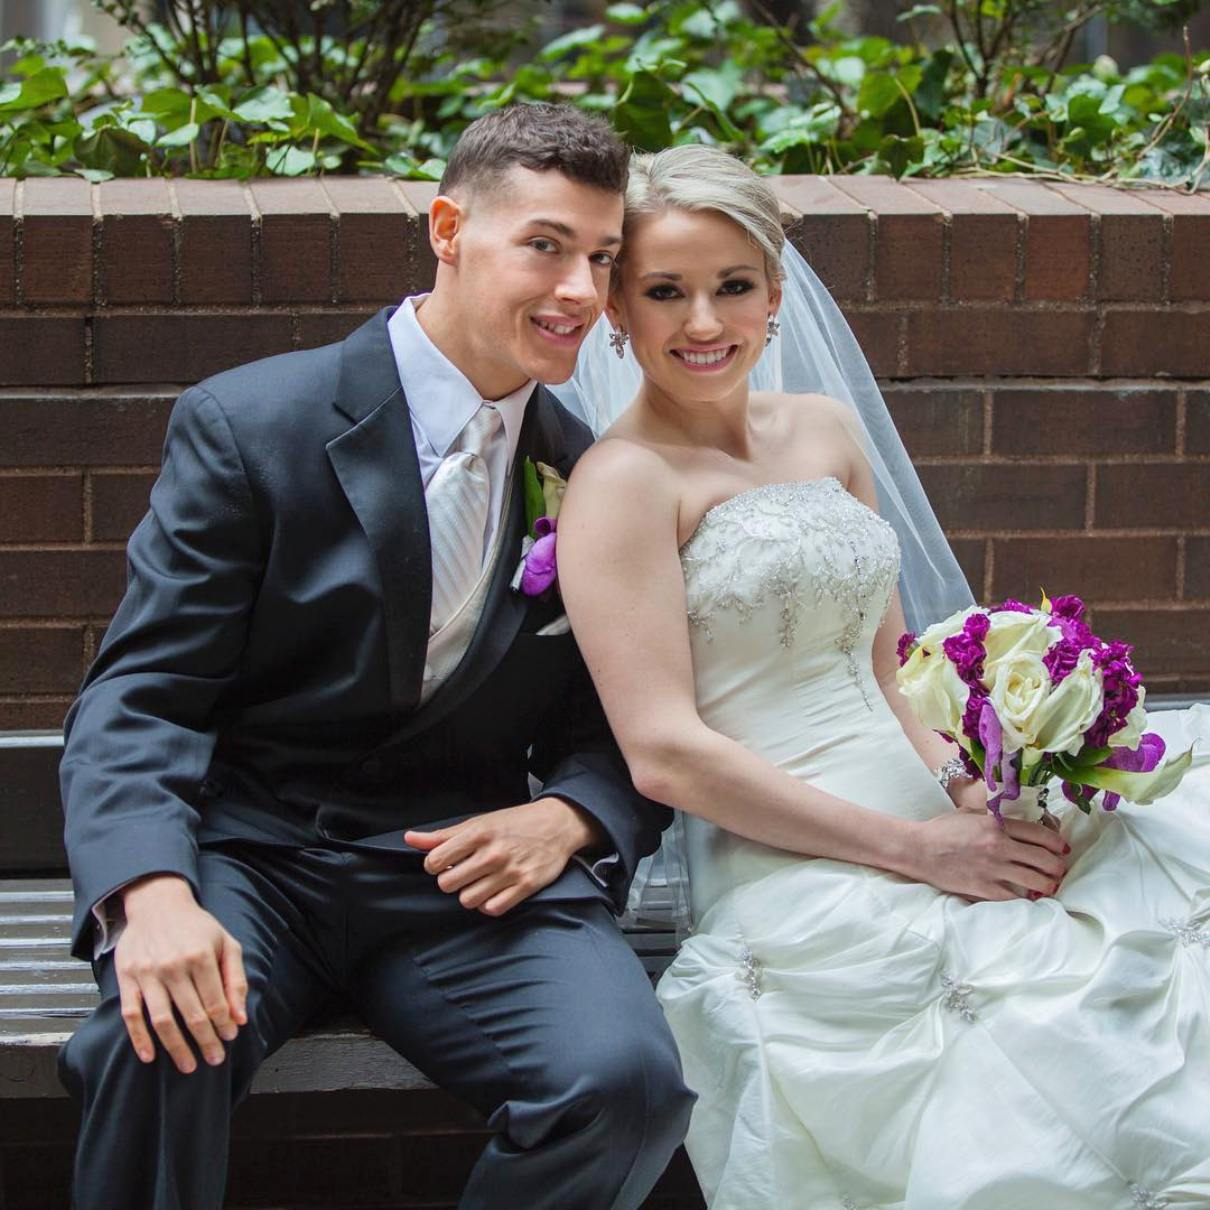 Married At First Sight's Jason Carrion and Cortney Hendrix Divorce After Four Years Of Marriage